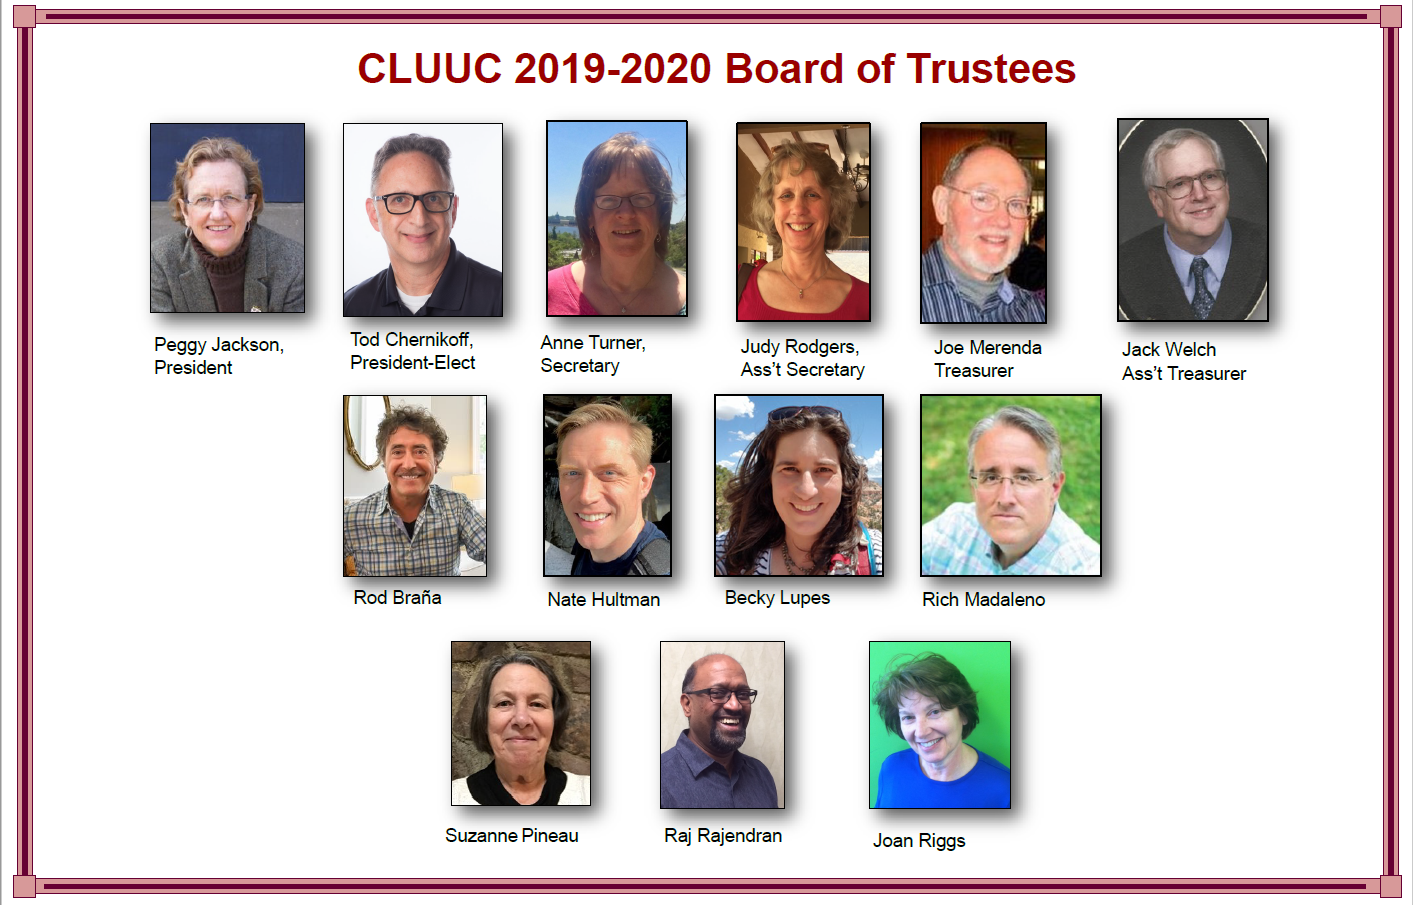 Board of Trustees 2019-2020 with photos and names